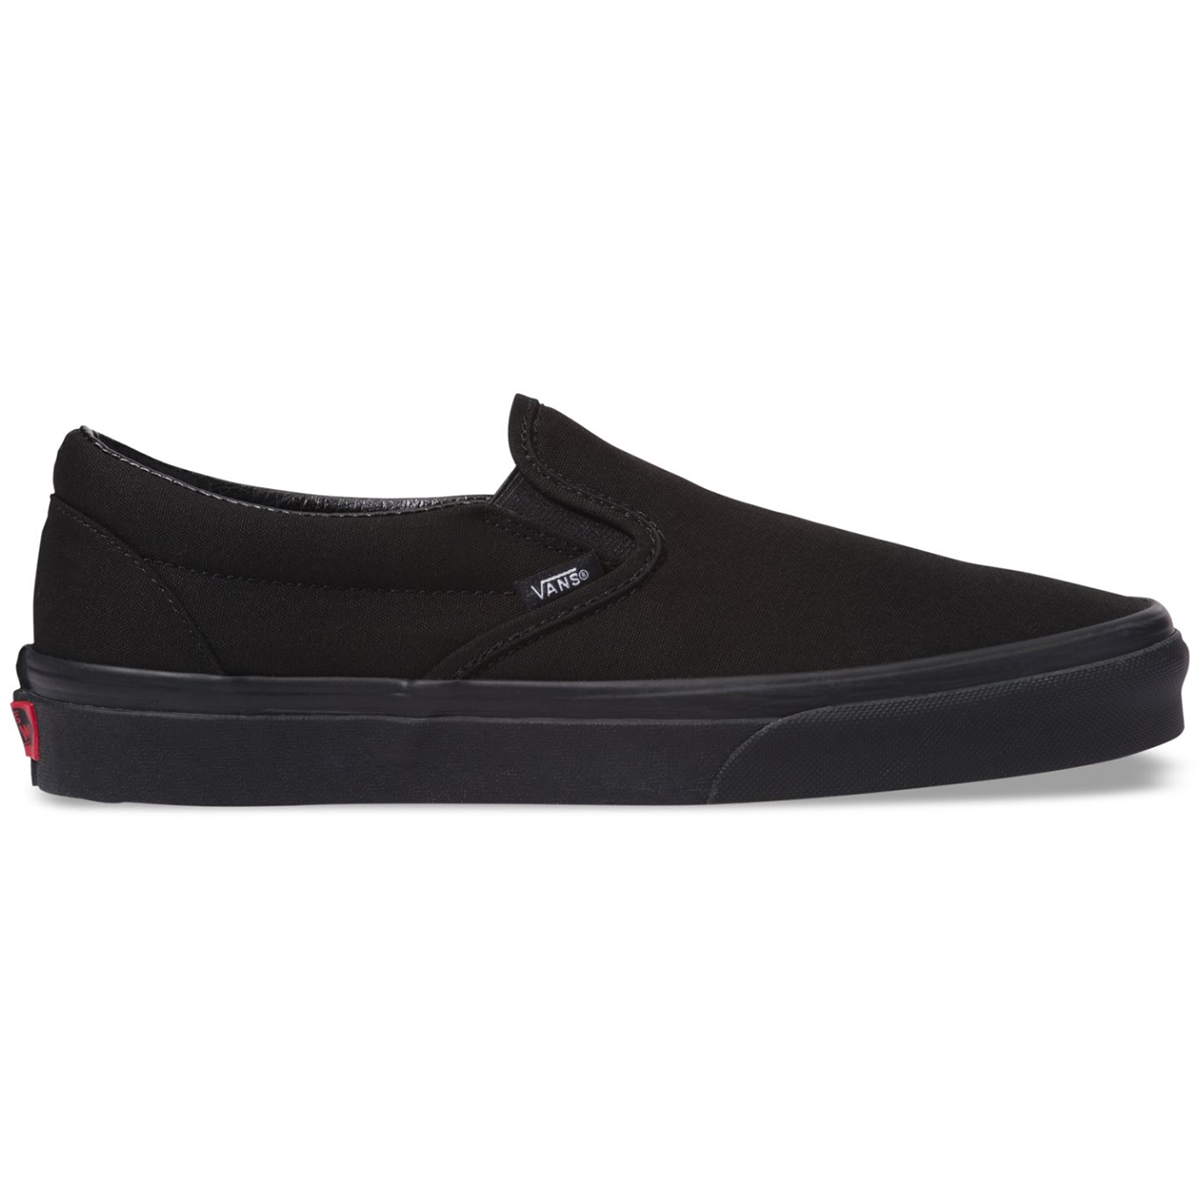 Vans Unisex Classic Slip-On Shoes - Black, 10.5